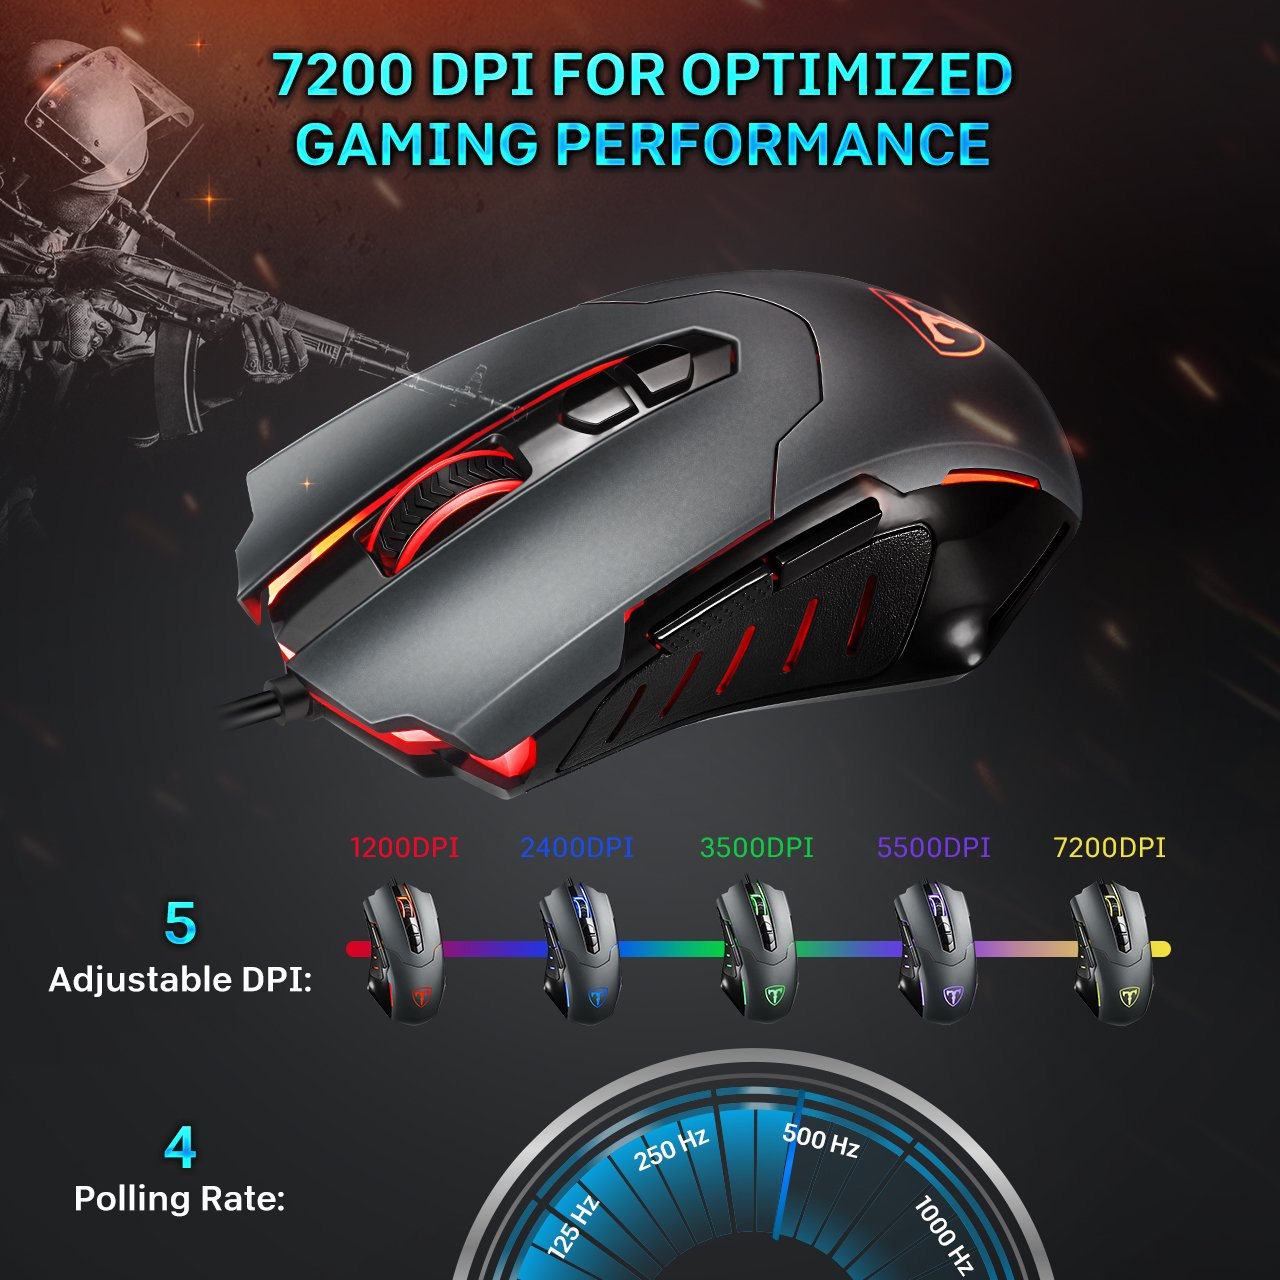 Optical Mouse with 4 Adjustable DPI USB Computer Mice with Backlit Ergonomic Mouse Laptop PC Mice with 8 Programmable Buttons for Windows 7//8//10//XP Vista Linux Mac -Black RGB Gaming Mouse Wired